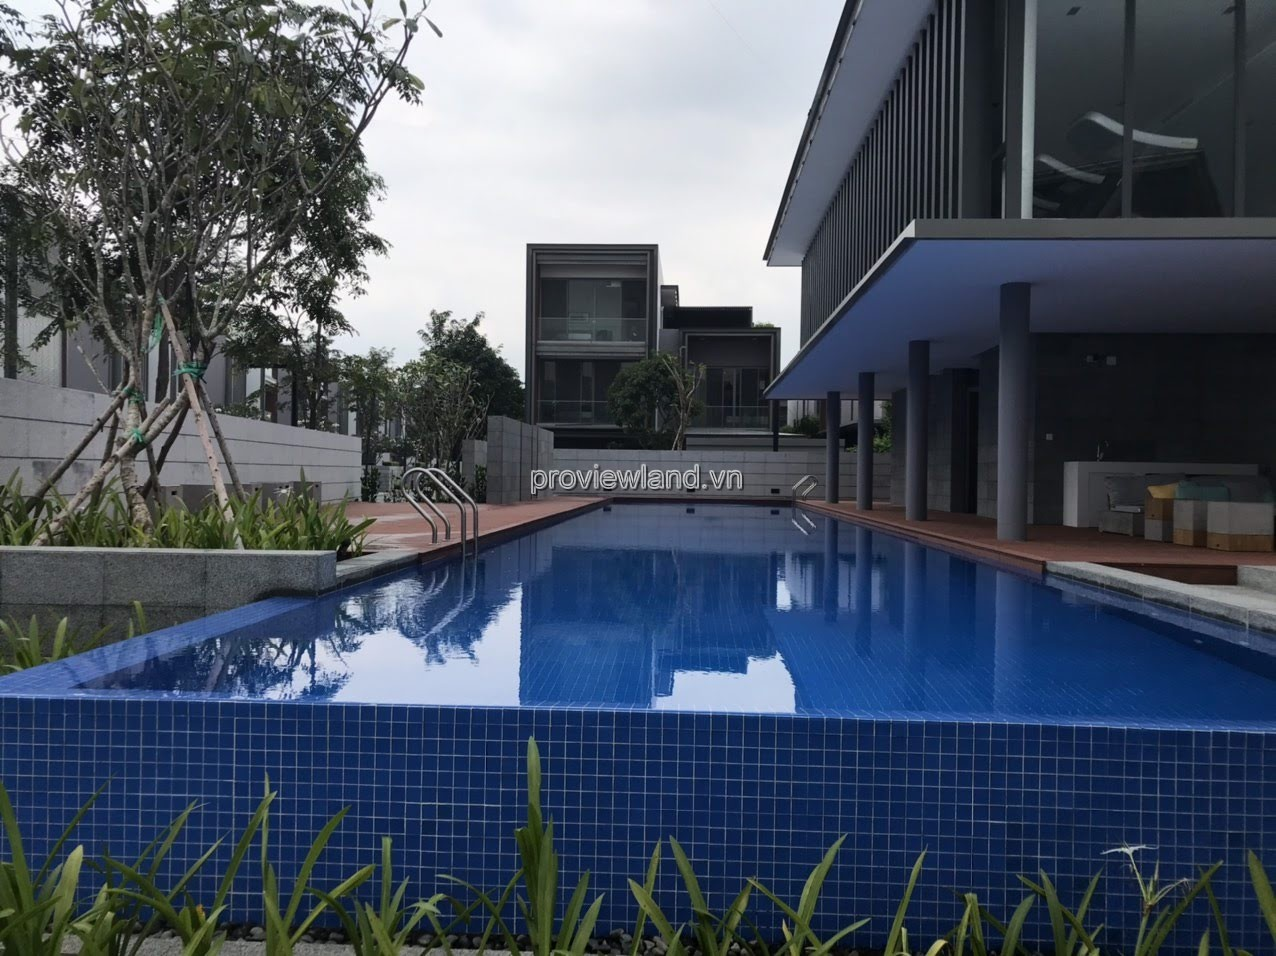 Holm Villas Nguyen Van Huong for sale has pool, 3 floors, 412sqm